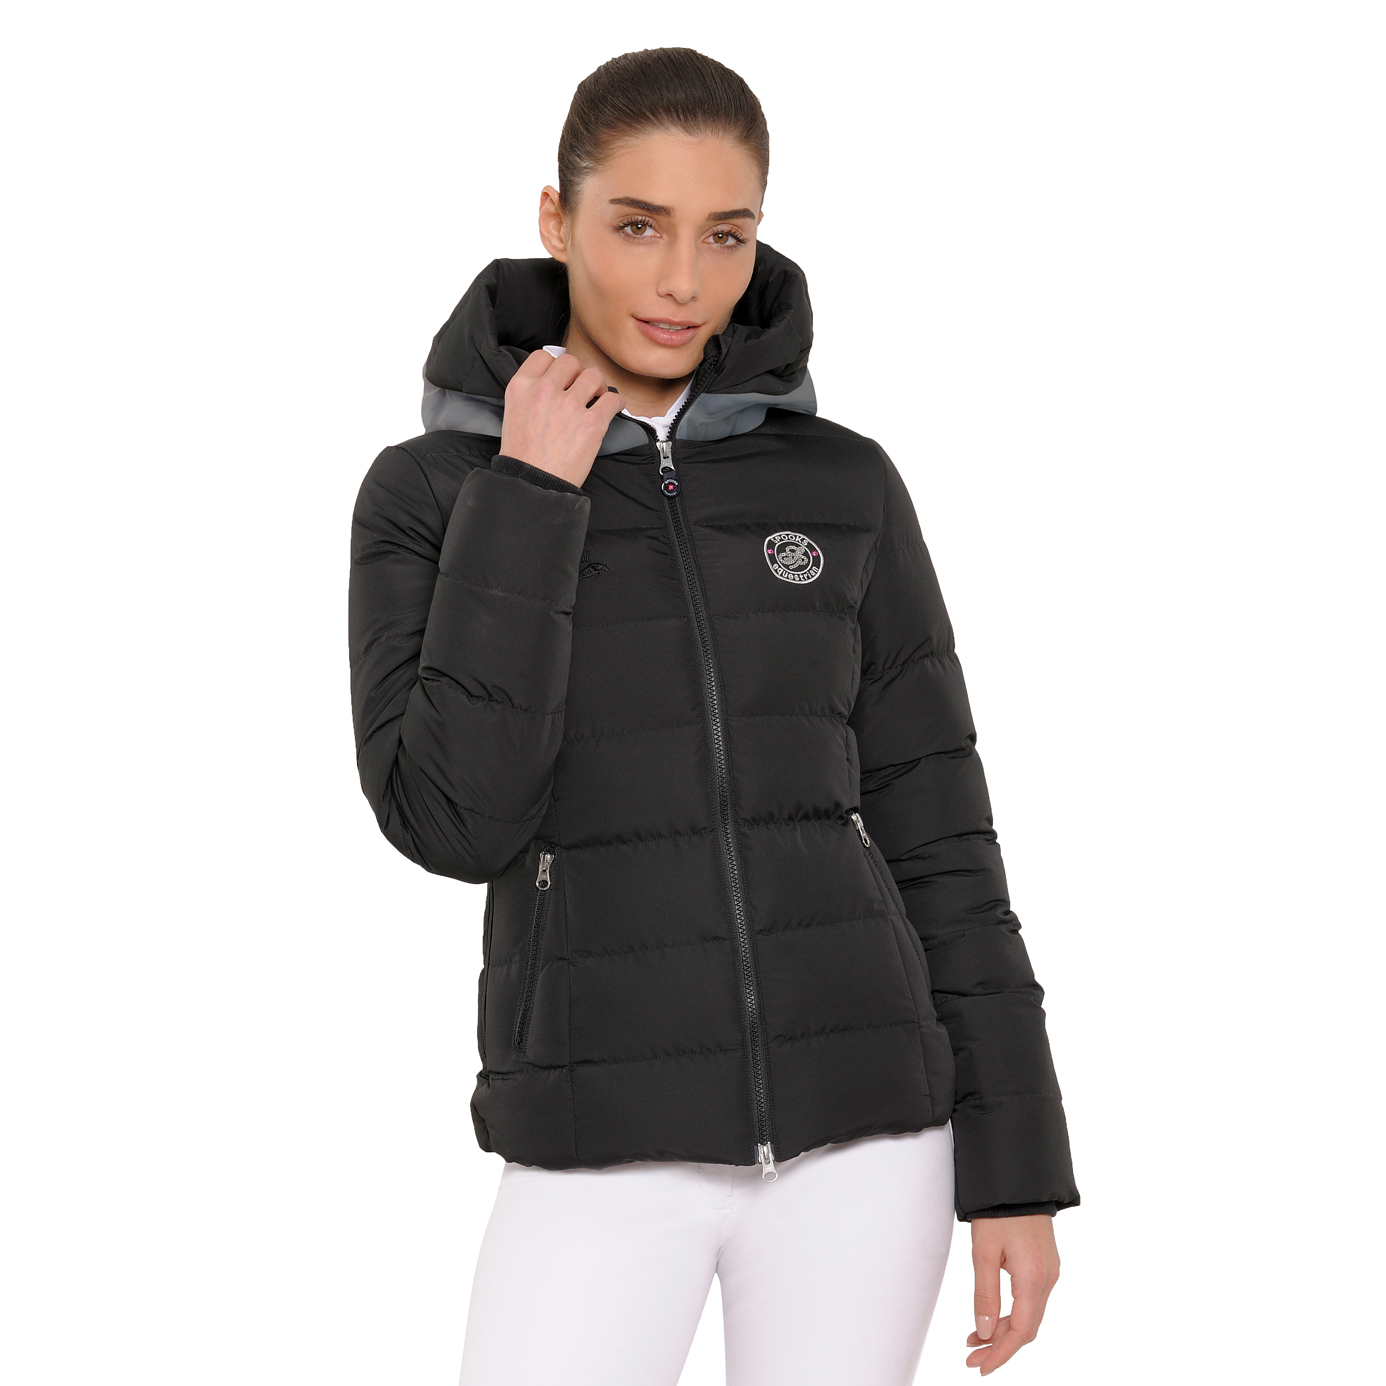 Spooks Black Debbie Ladies Equestrian Jacket